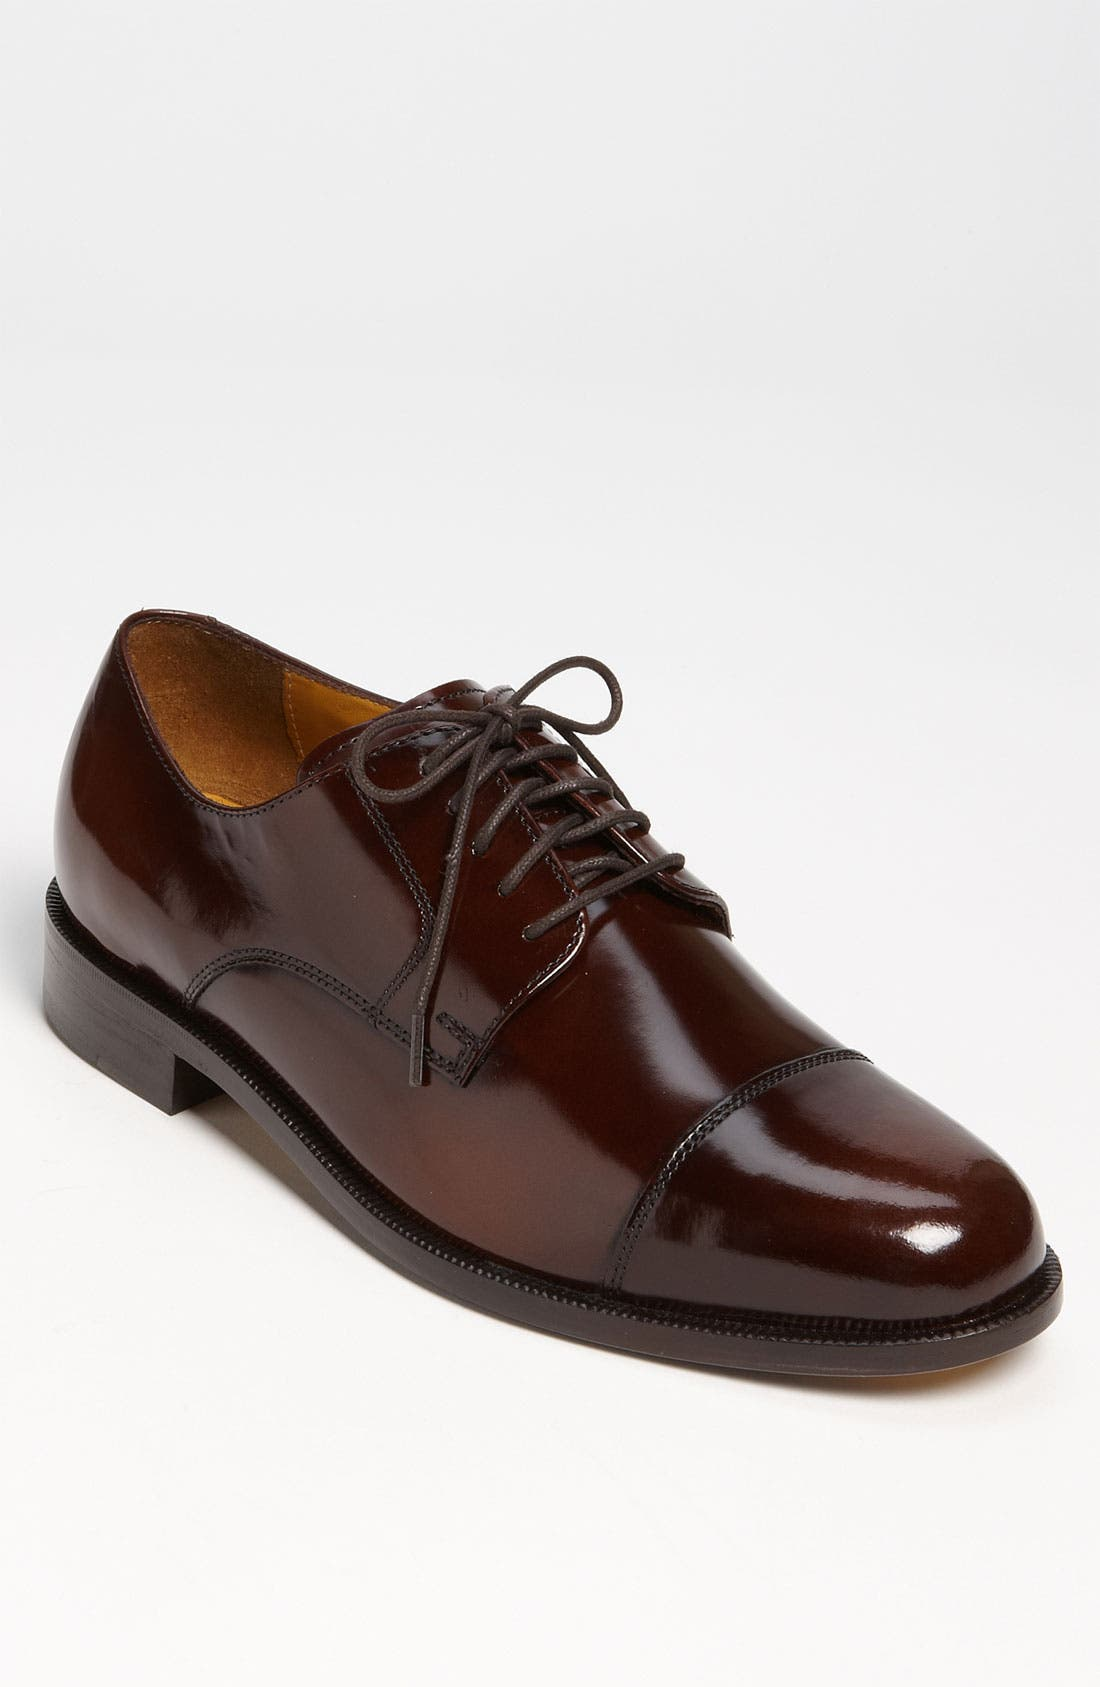 Main Image - Cole Haan 'Air Carter' Oxford (Online Only)   (Men)